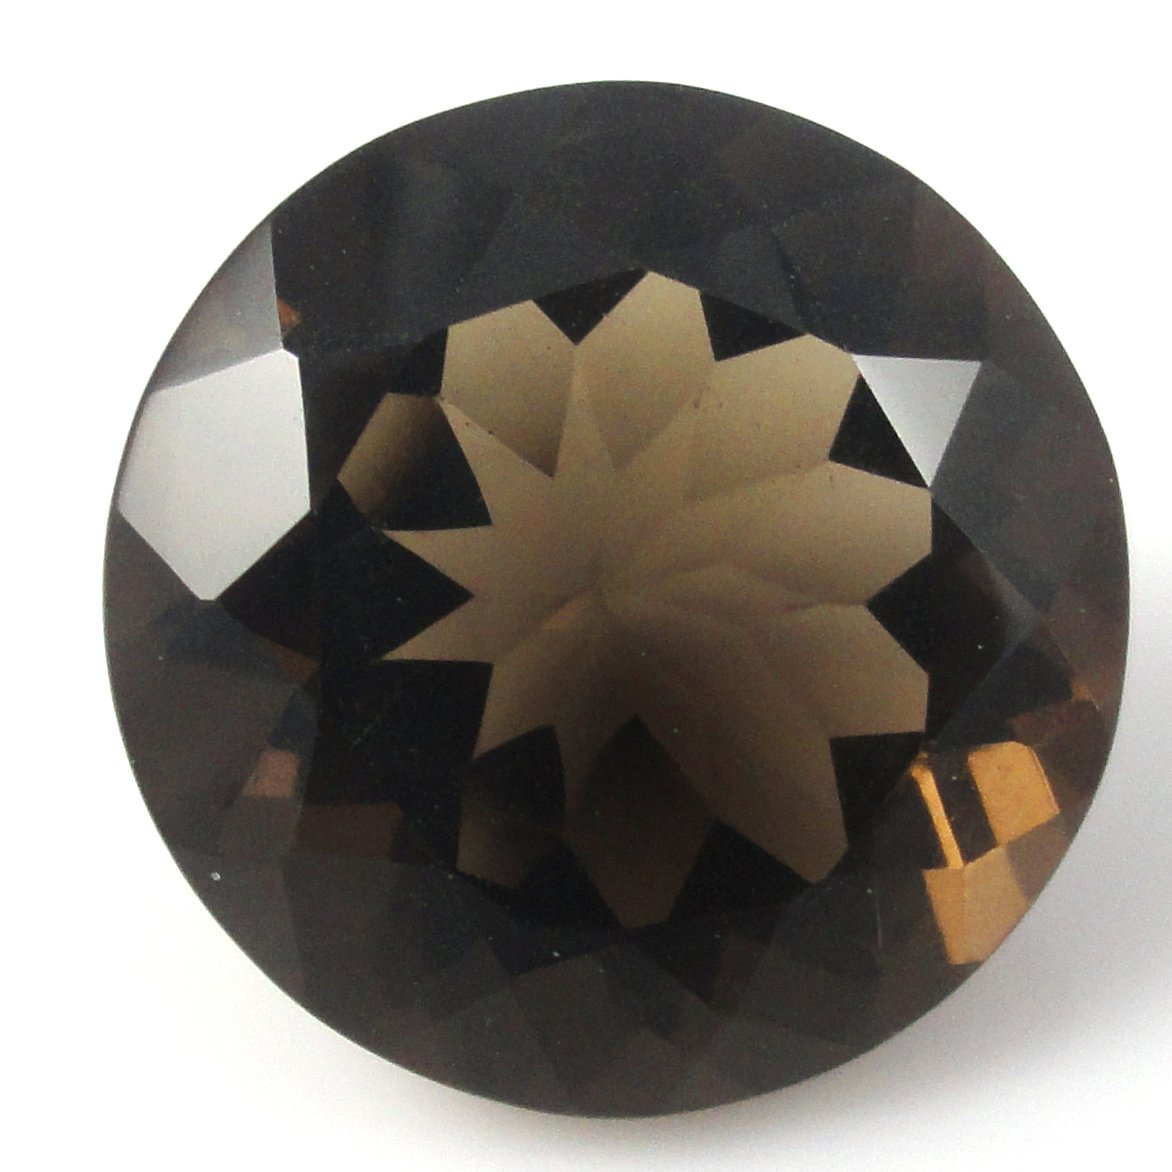 Certified Natural Smoky Quartz AAA Quality 9 mm Faceted Round 1 pc loose gemstone